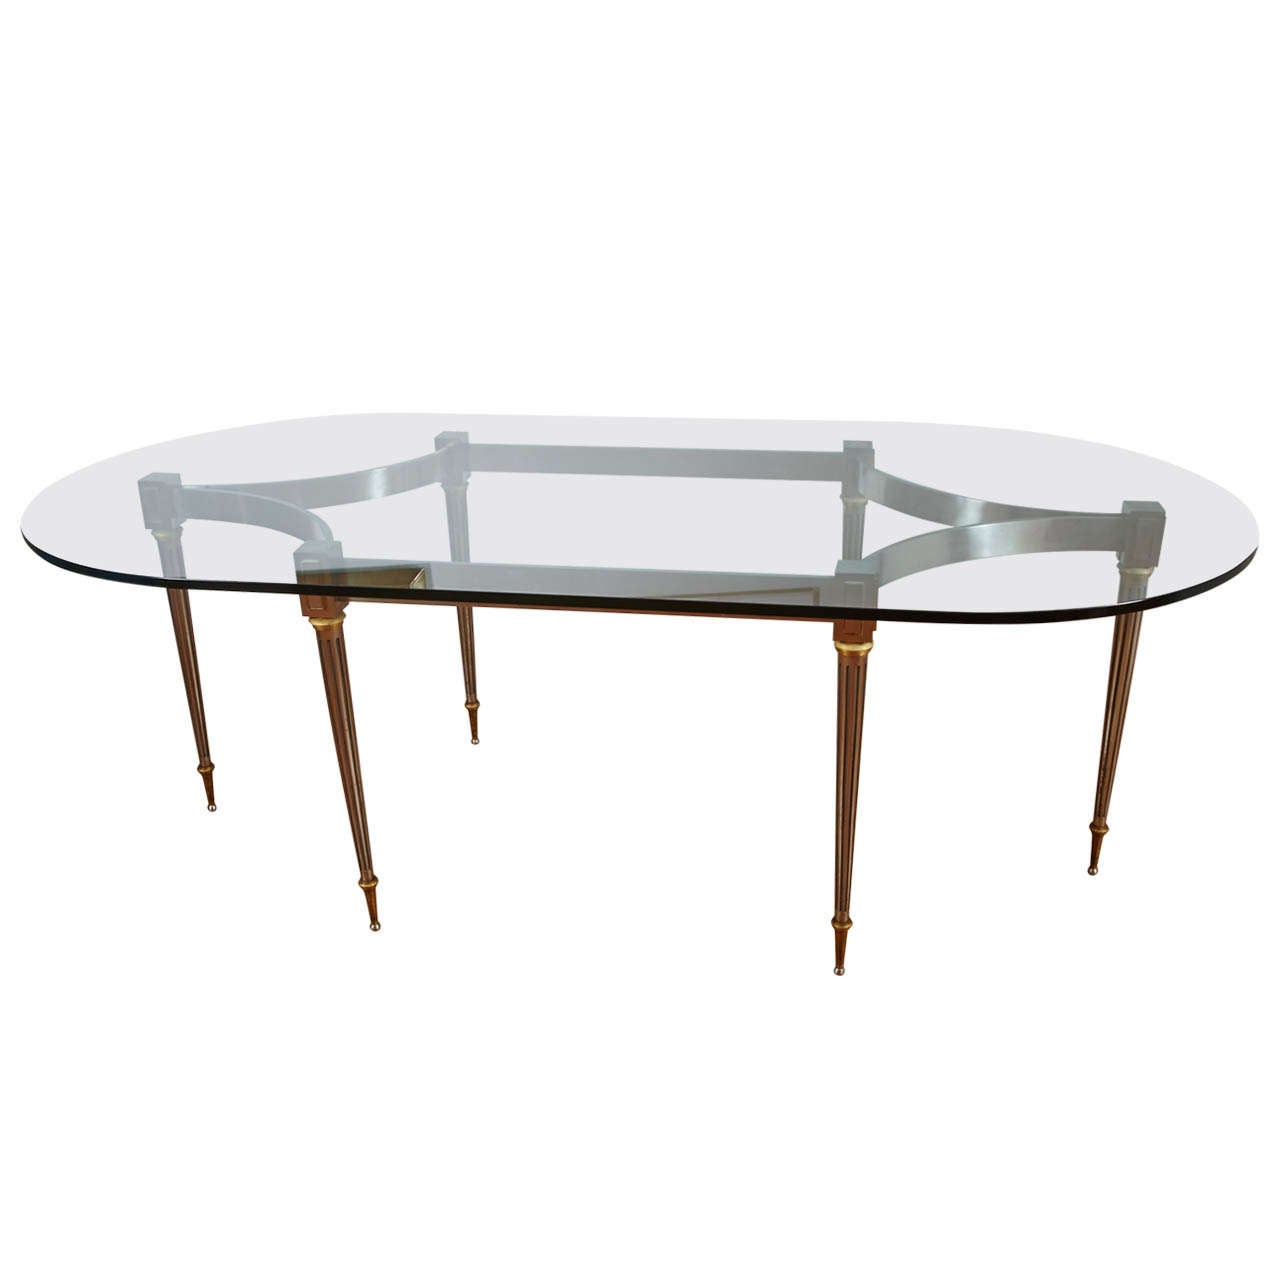 Dining Room Table By Santangelo France 1970 At 1stdibs